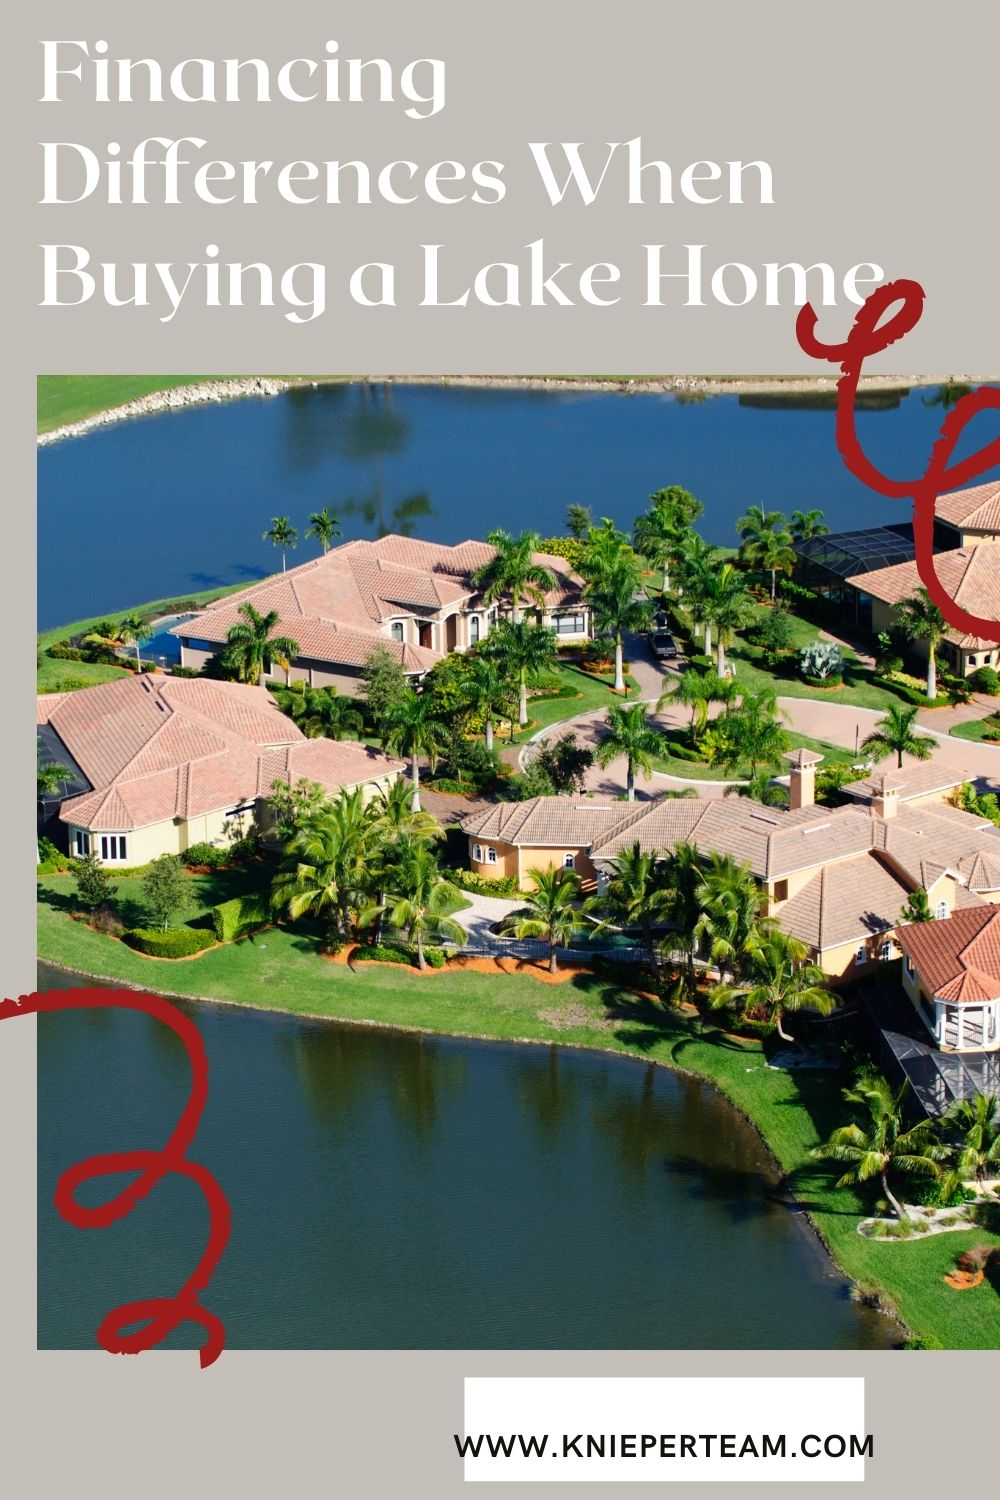 Financing Differences When Buying a Lake Home